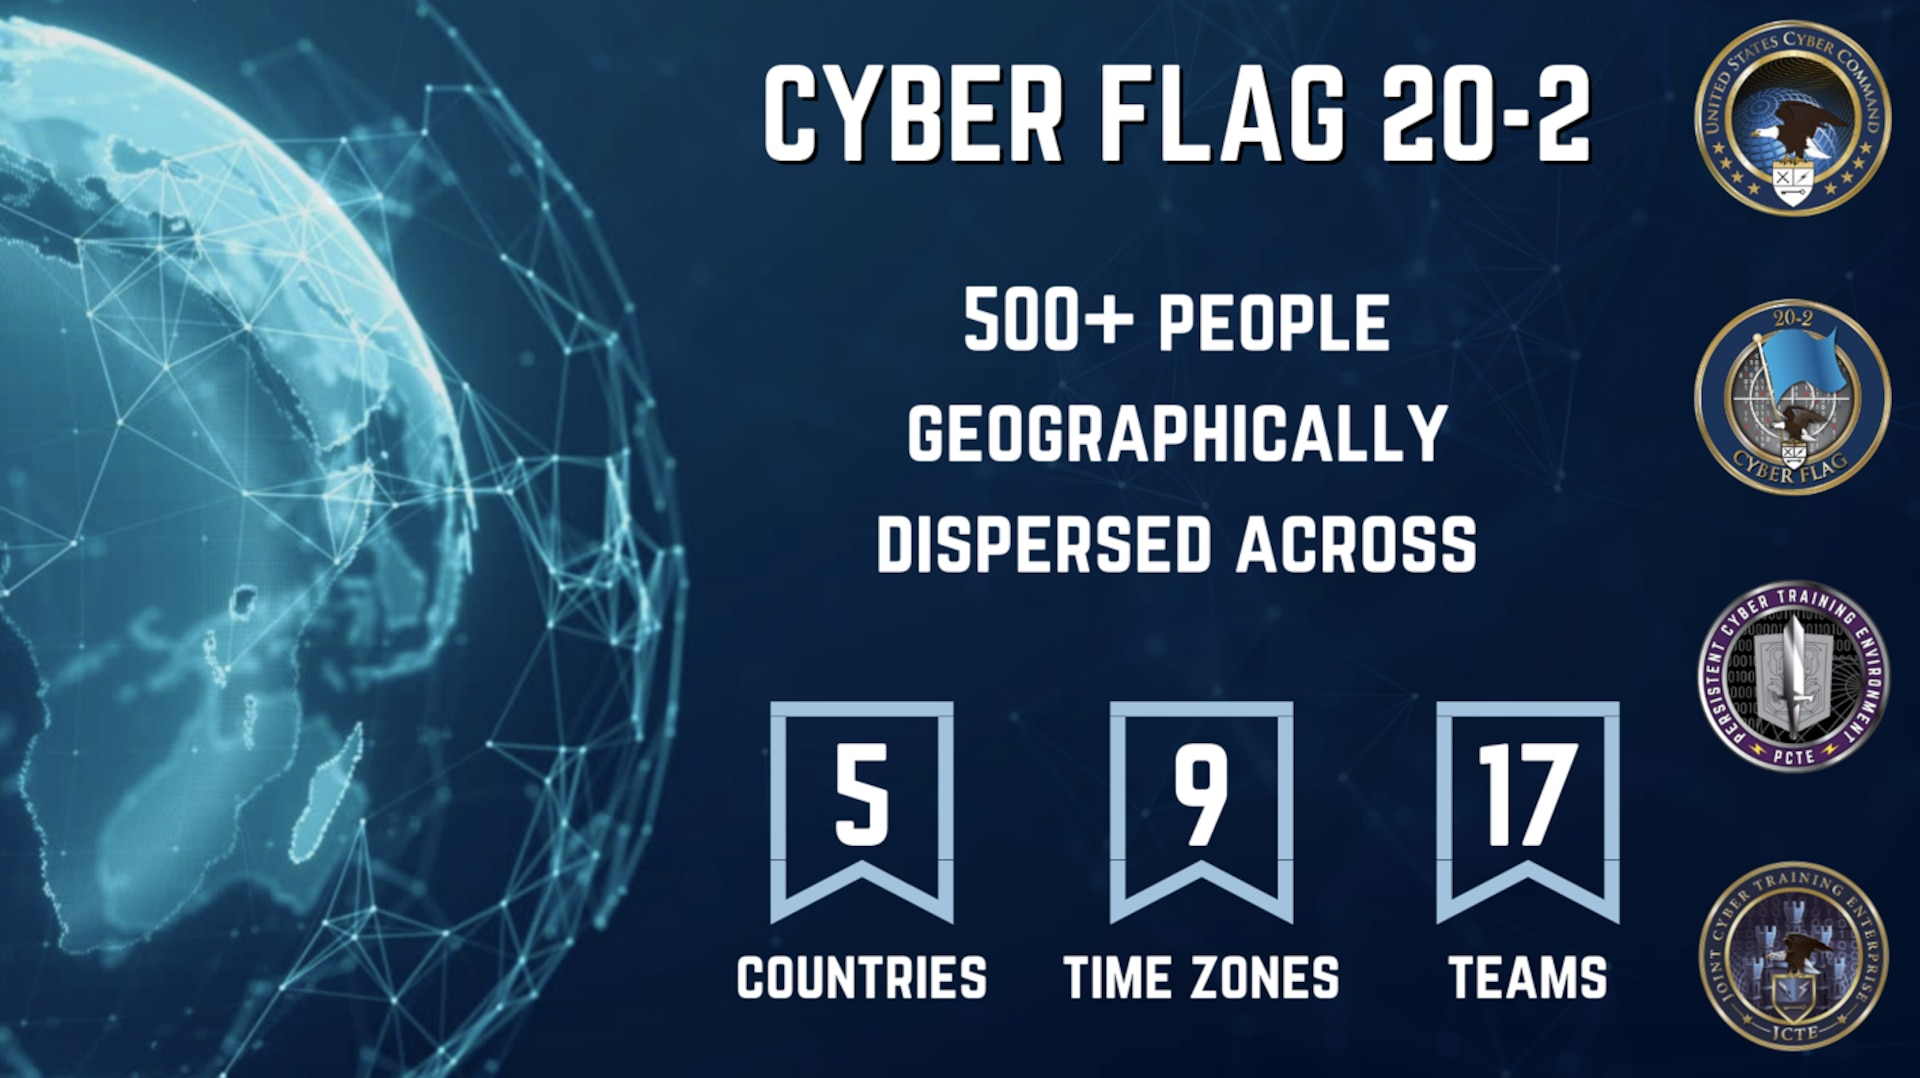 Cyber Flag 20-2 Numbers